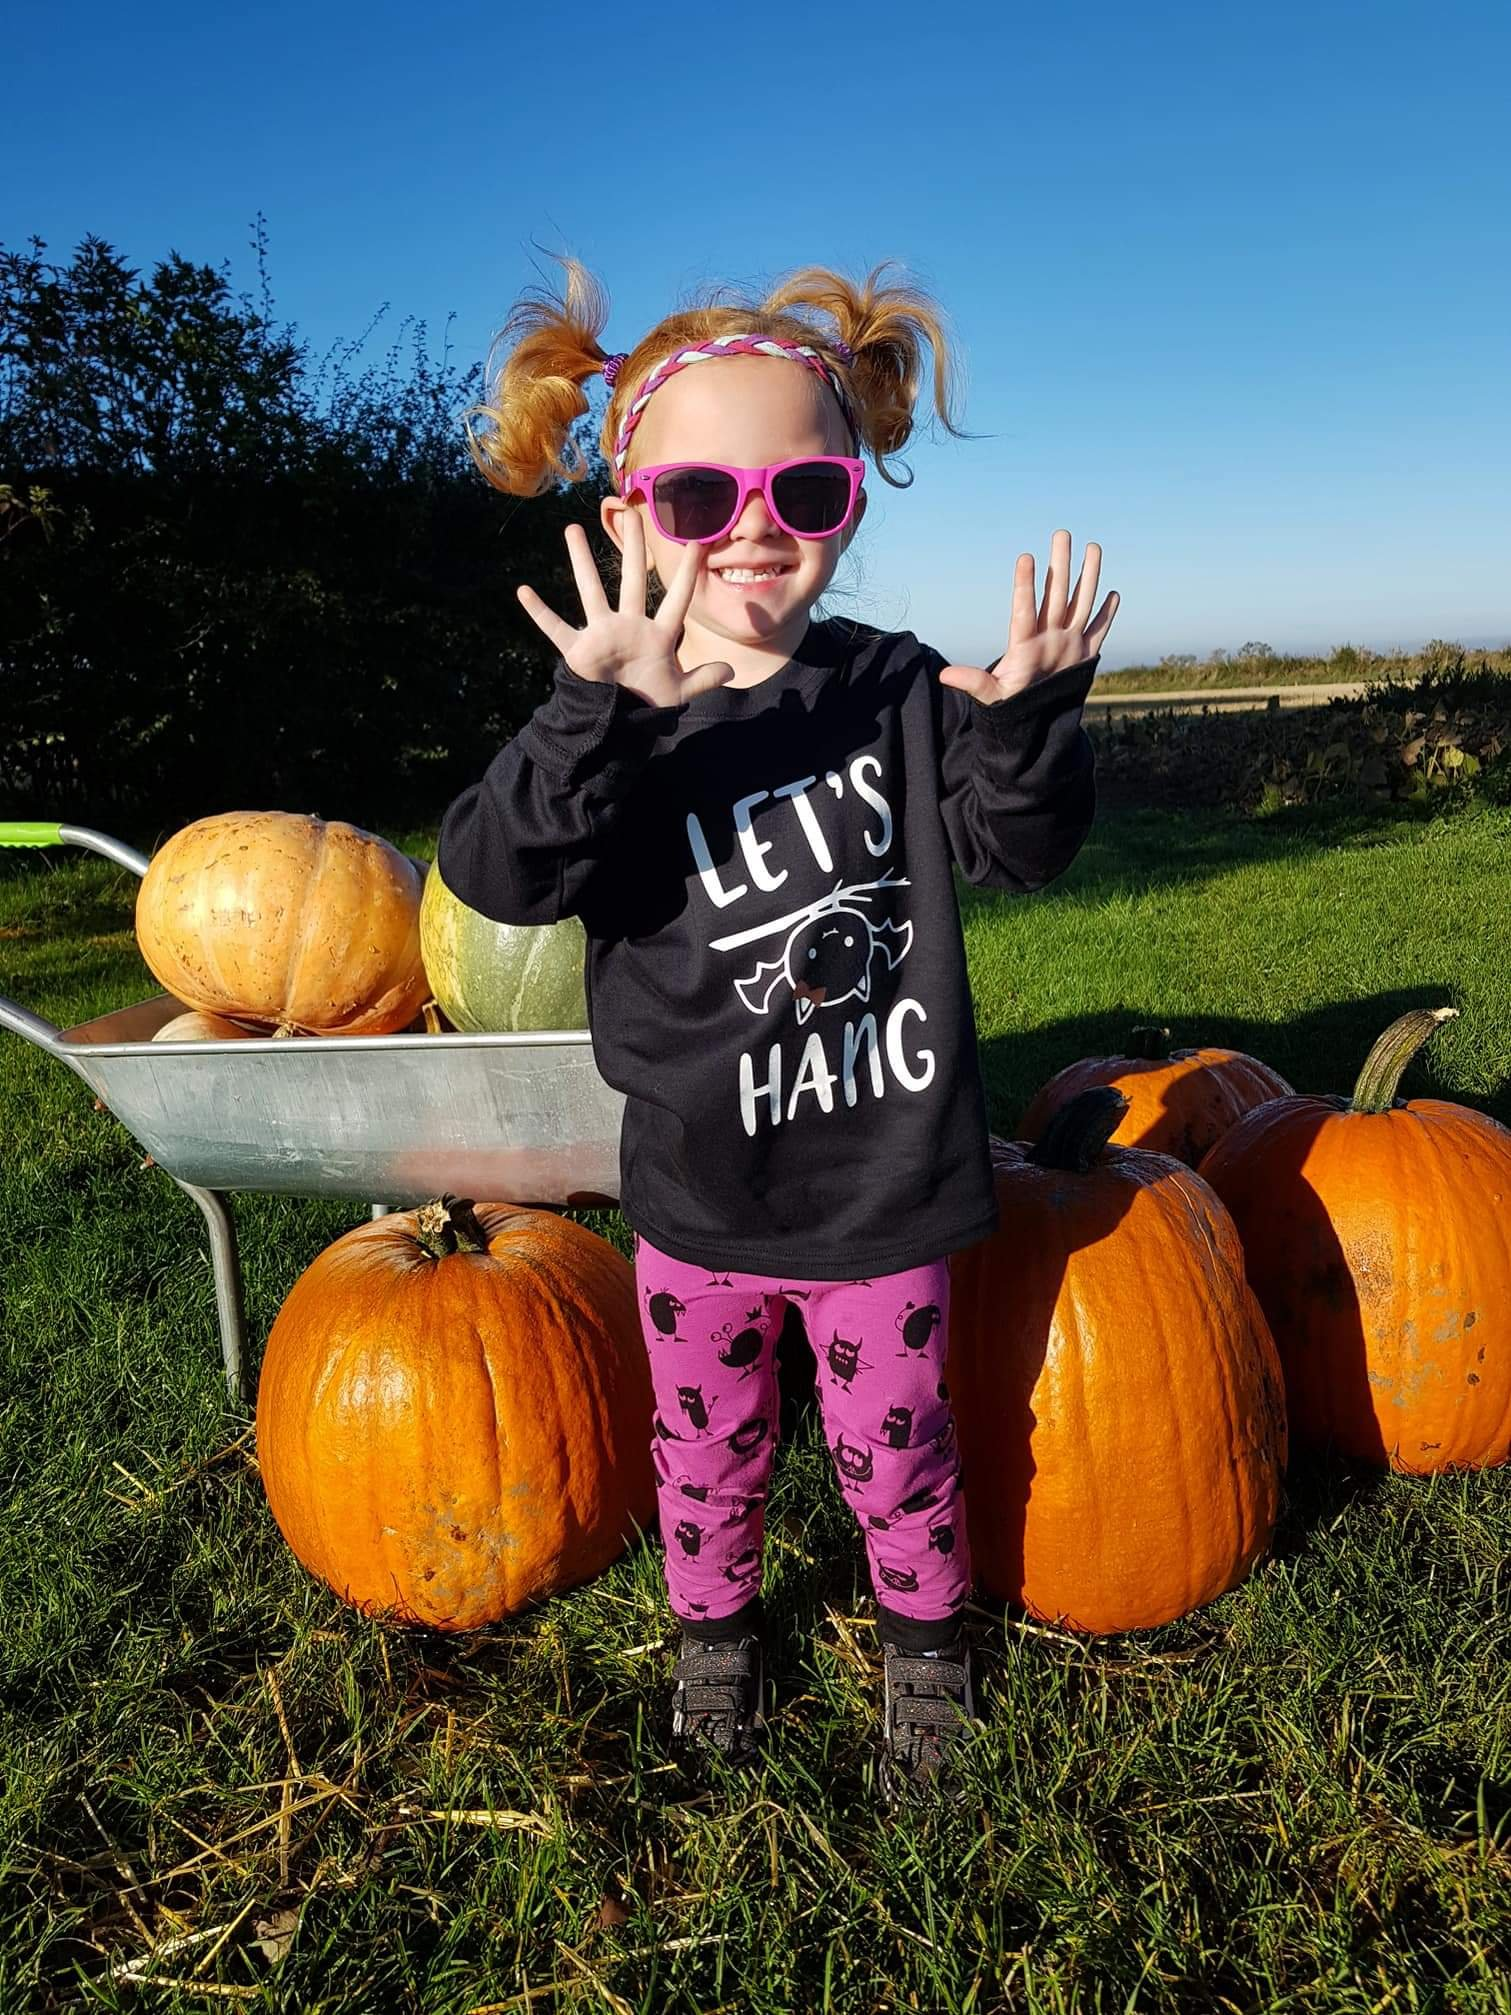 High 5 (or high 10) if you love Halloween activities!